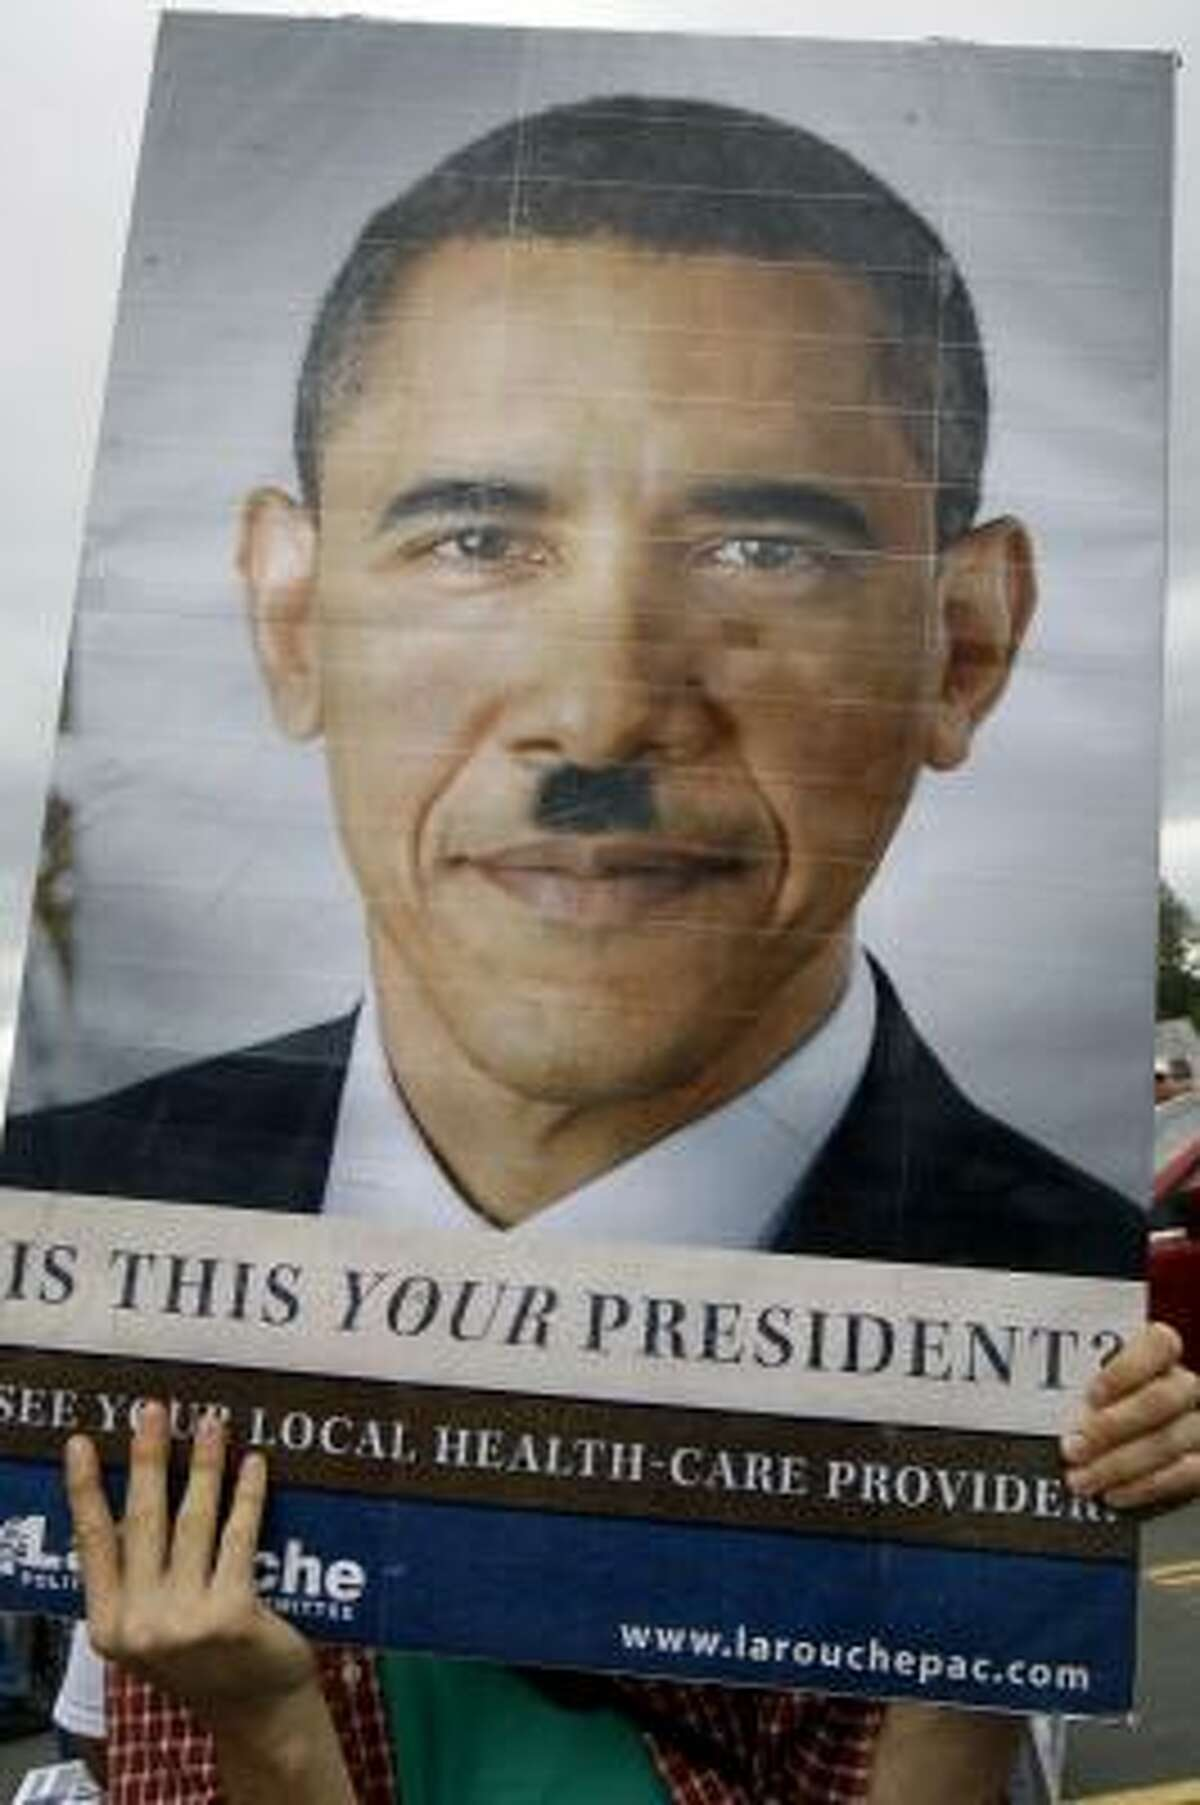 Critics of Obama's health care overhaul plan have often compared him to Hitler.